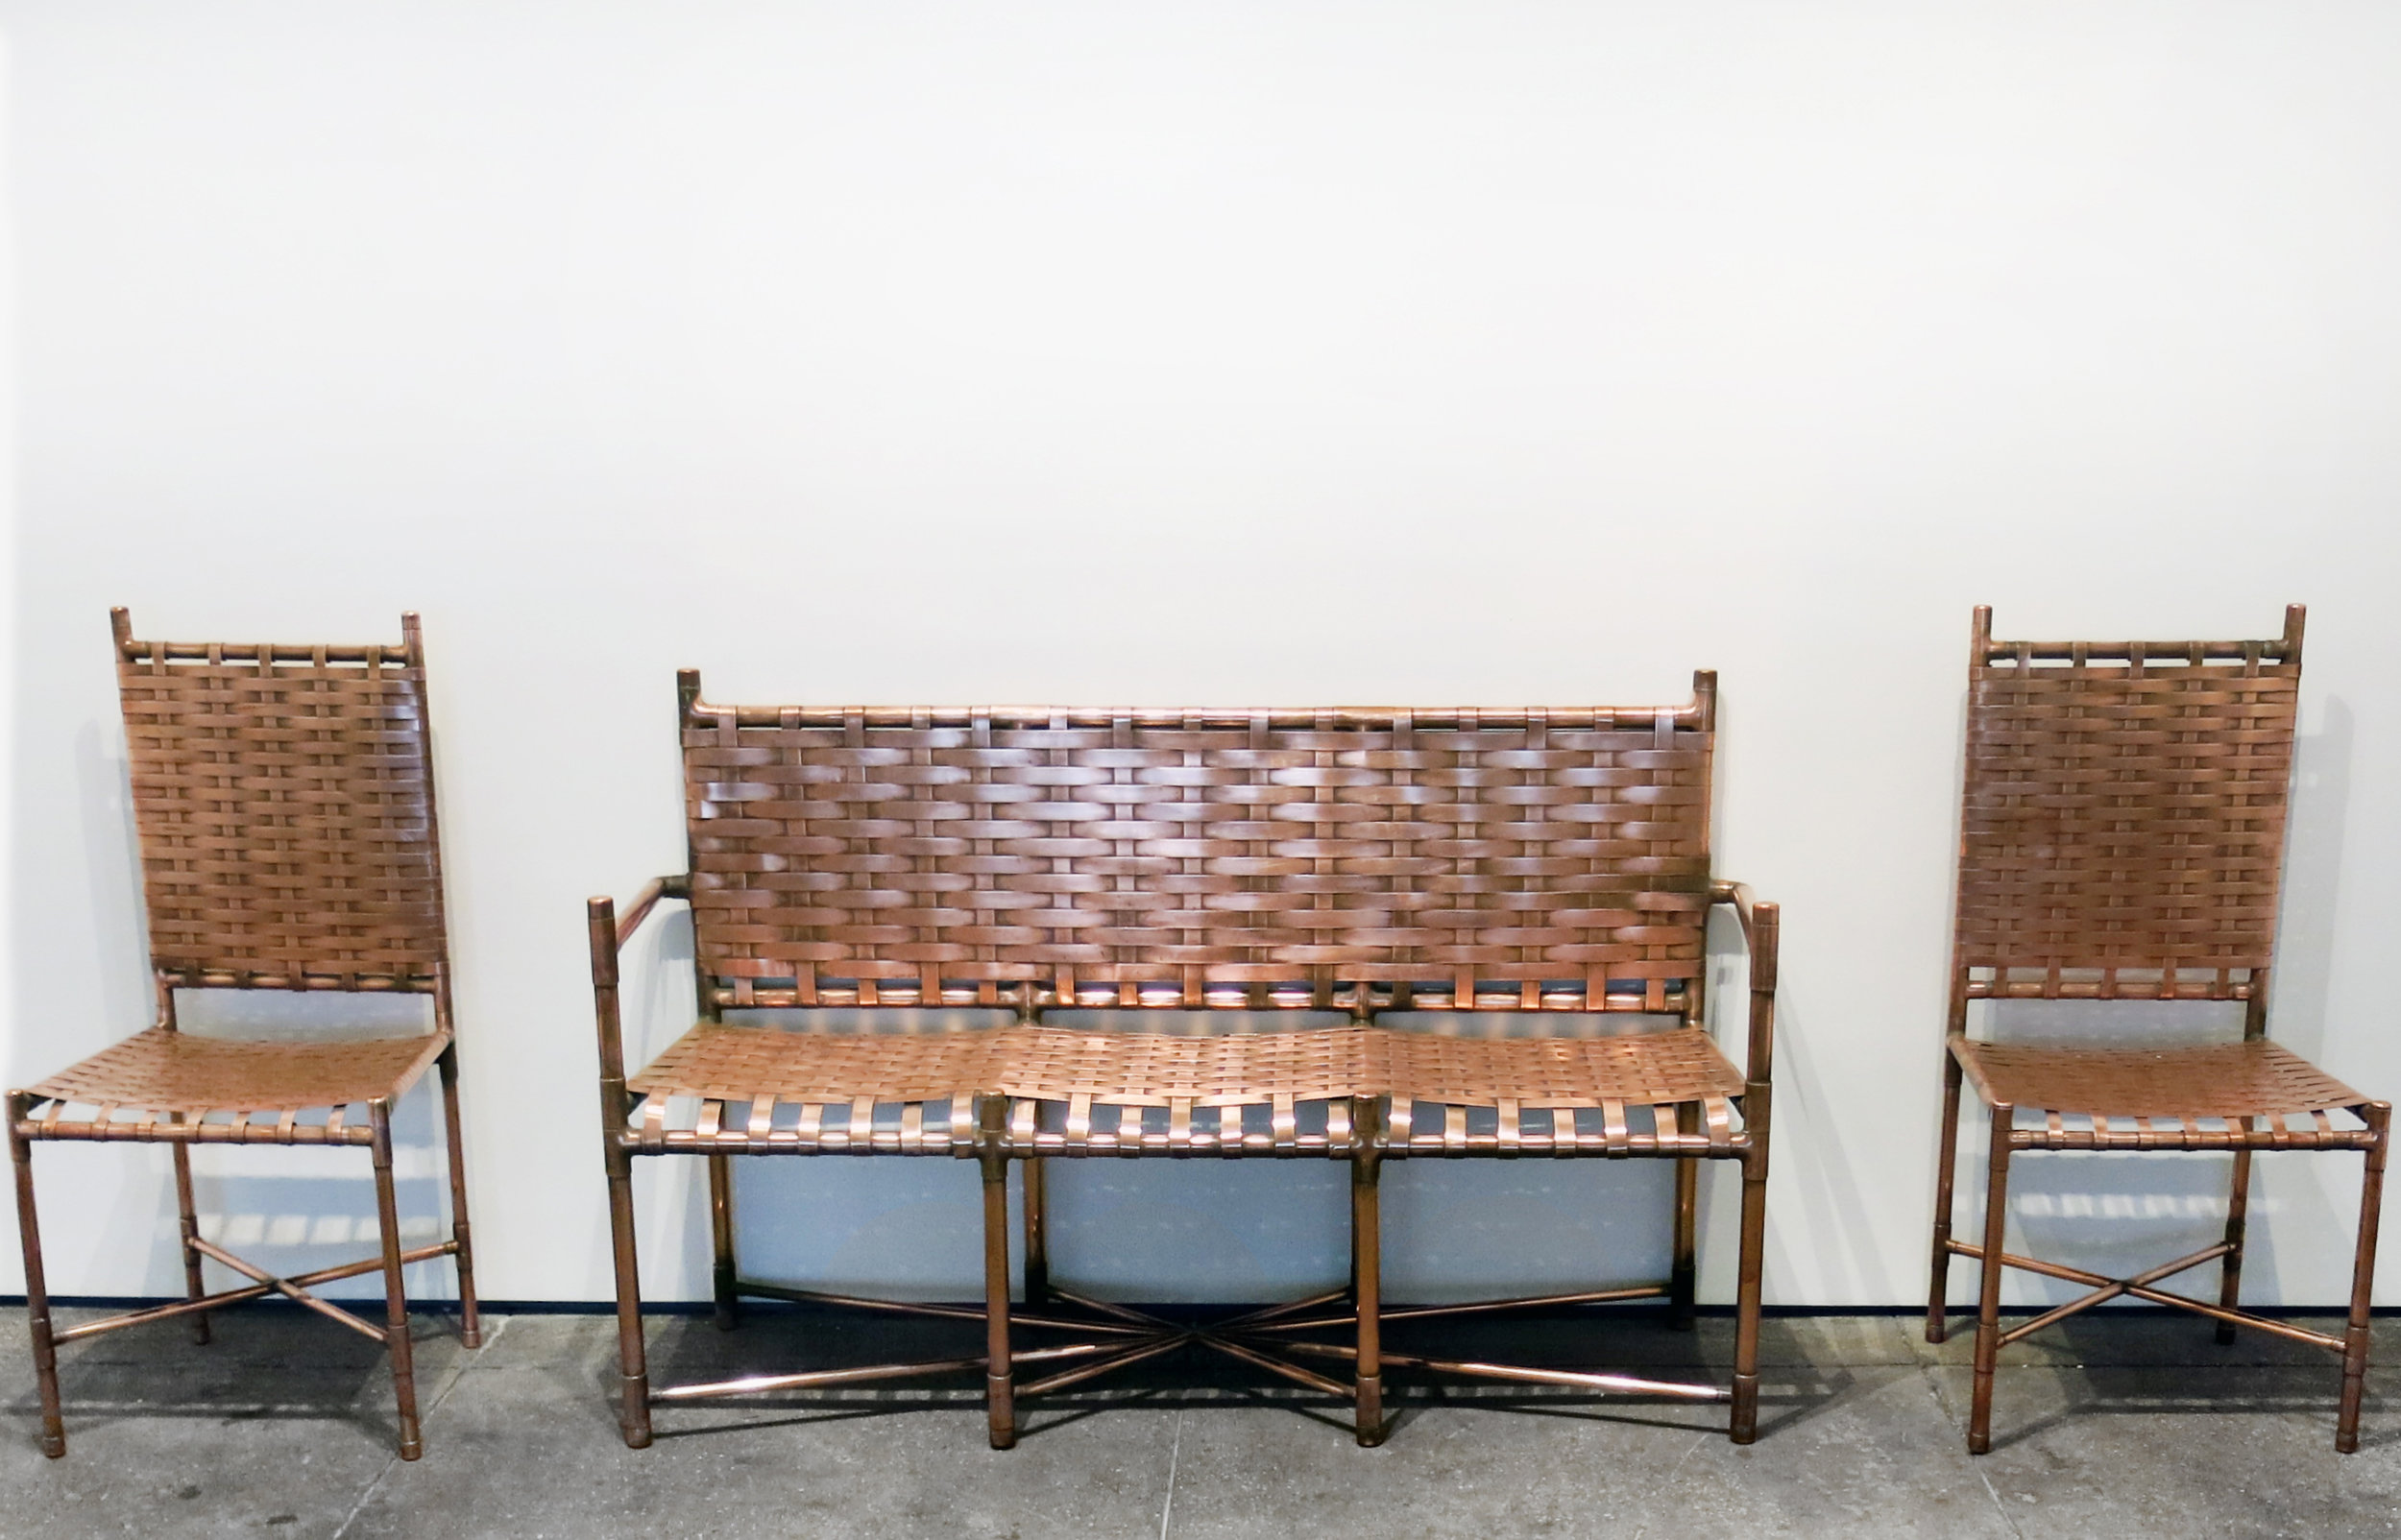 Paul Morgensen,  Copper Settee and Two Side Chairs,  1985, hand woven copper, settee: 35h x 57.5w x 17d in. chairs: 38.25h x 18.75w x 16d in.